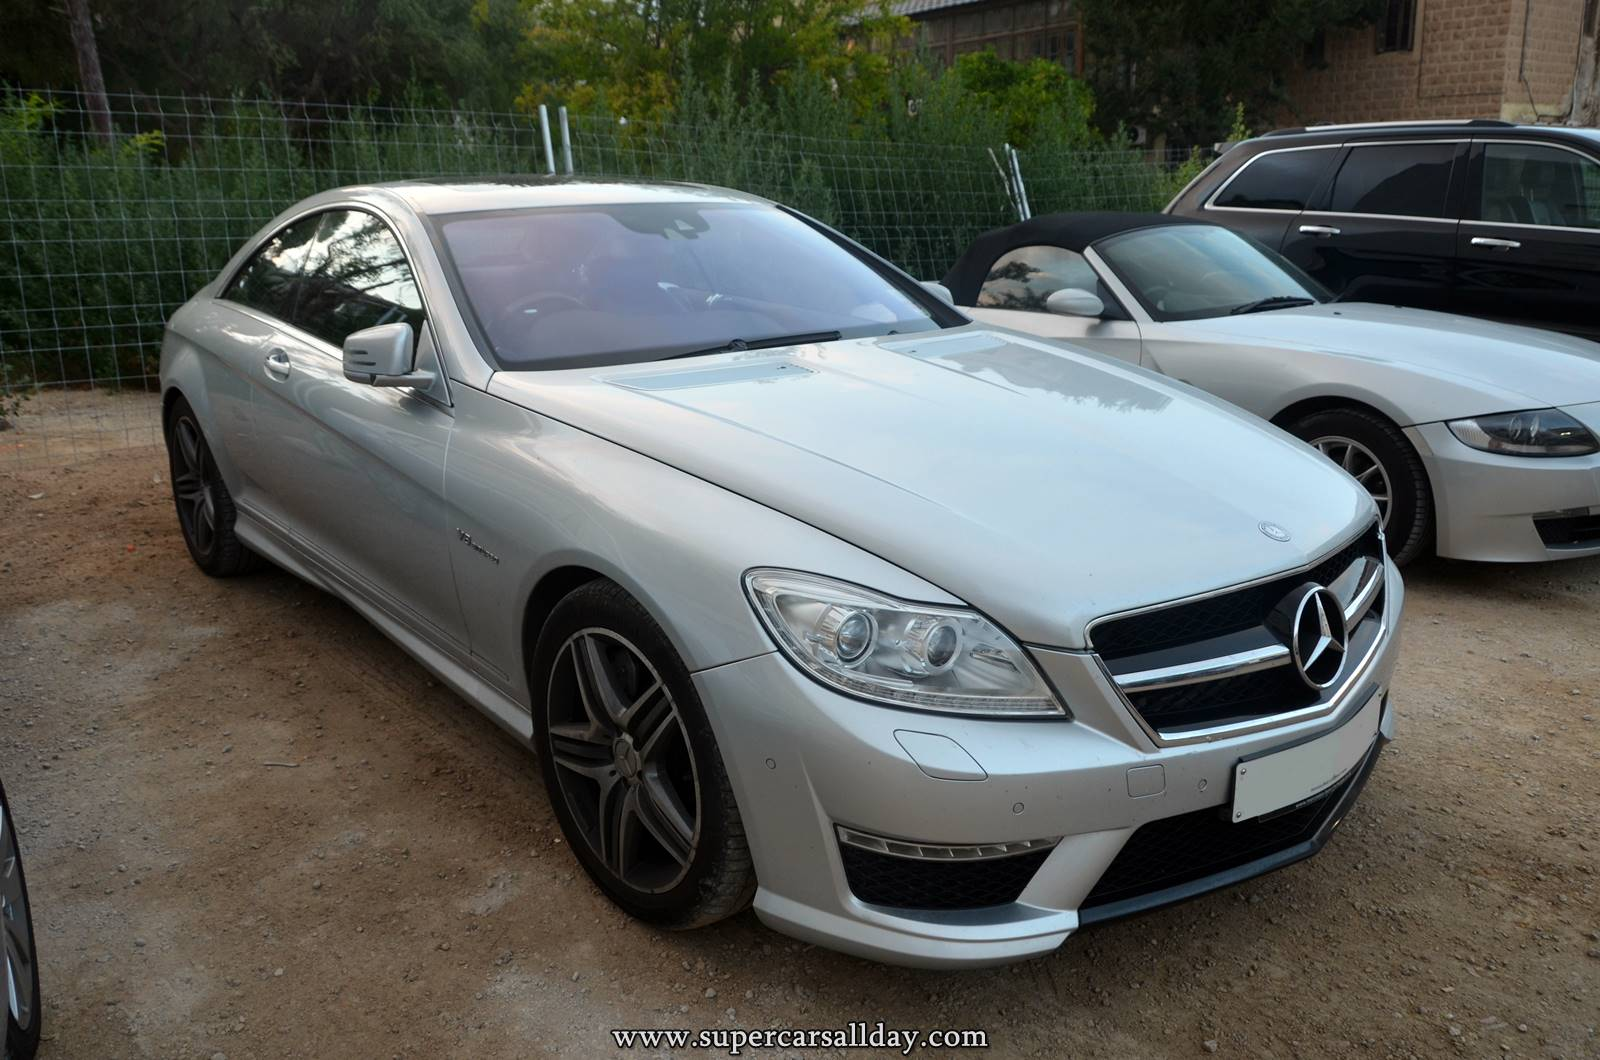 mercedes benz cl 63 amg c216 2011 supercars all day exotic cars photo car collection. Black Bedroom Furniture Sets. Home Design Ideas